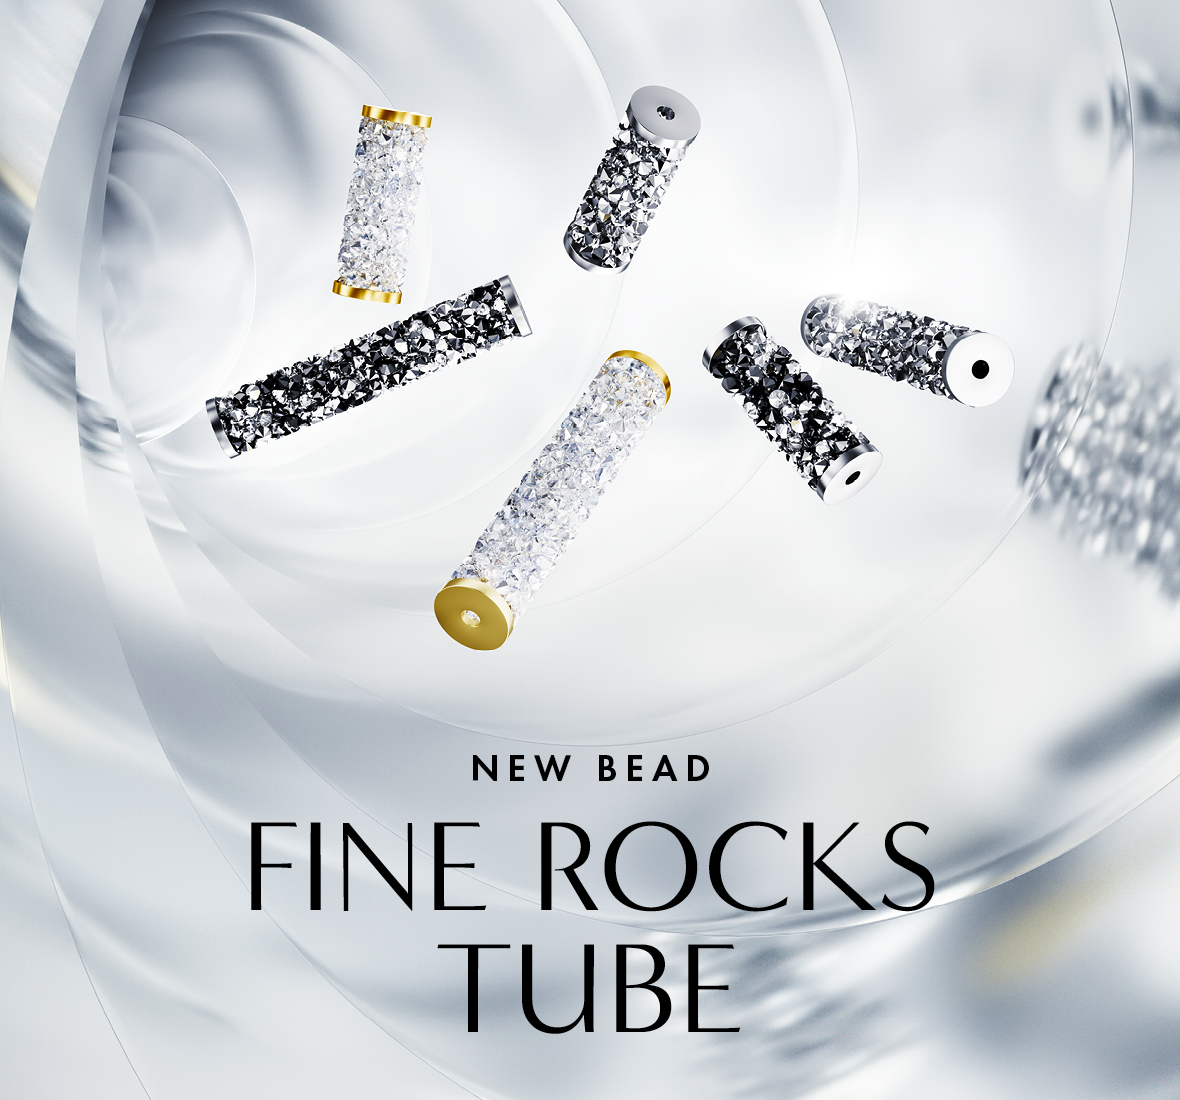 New Swarovski Crystal Fine Rocks Tube Beads Innovations